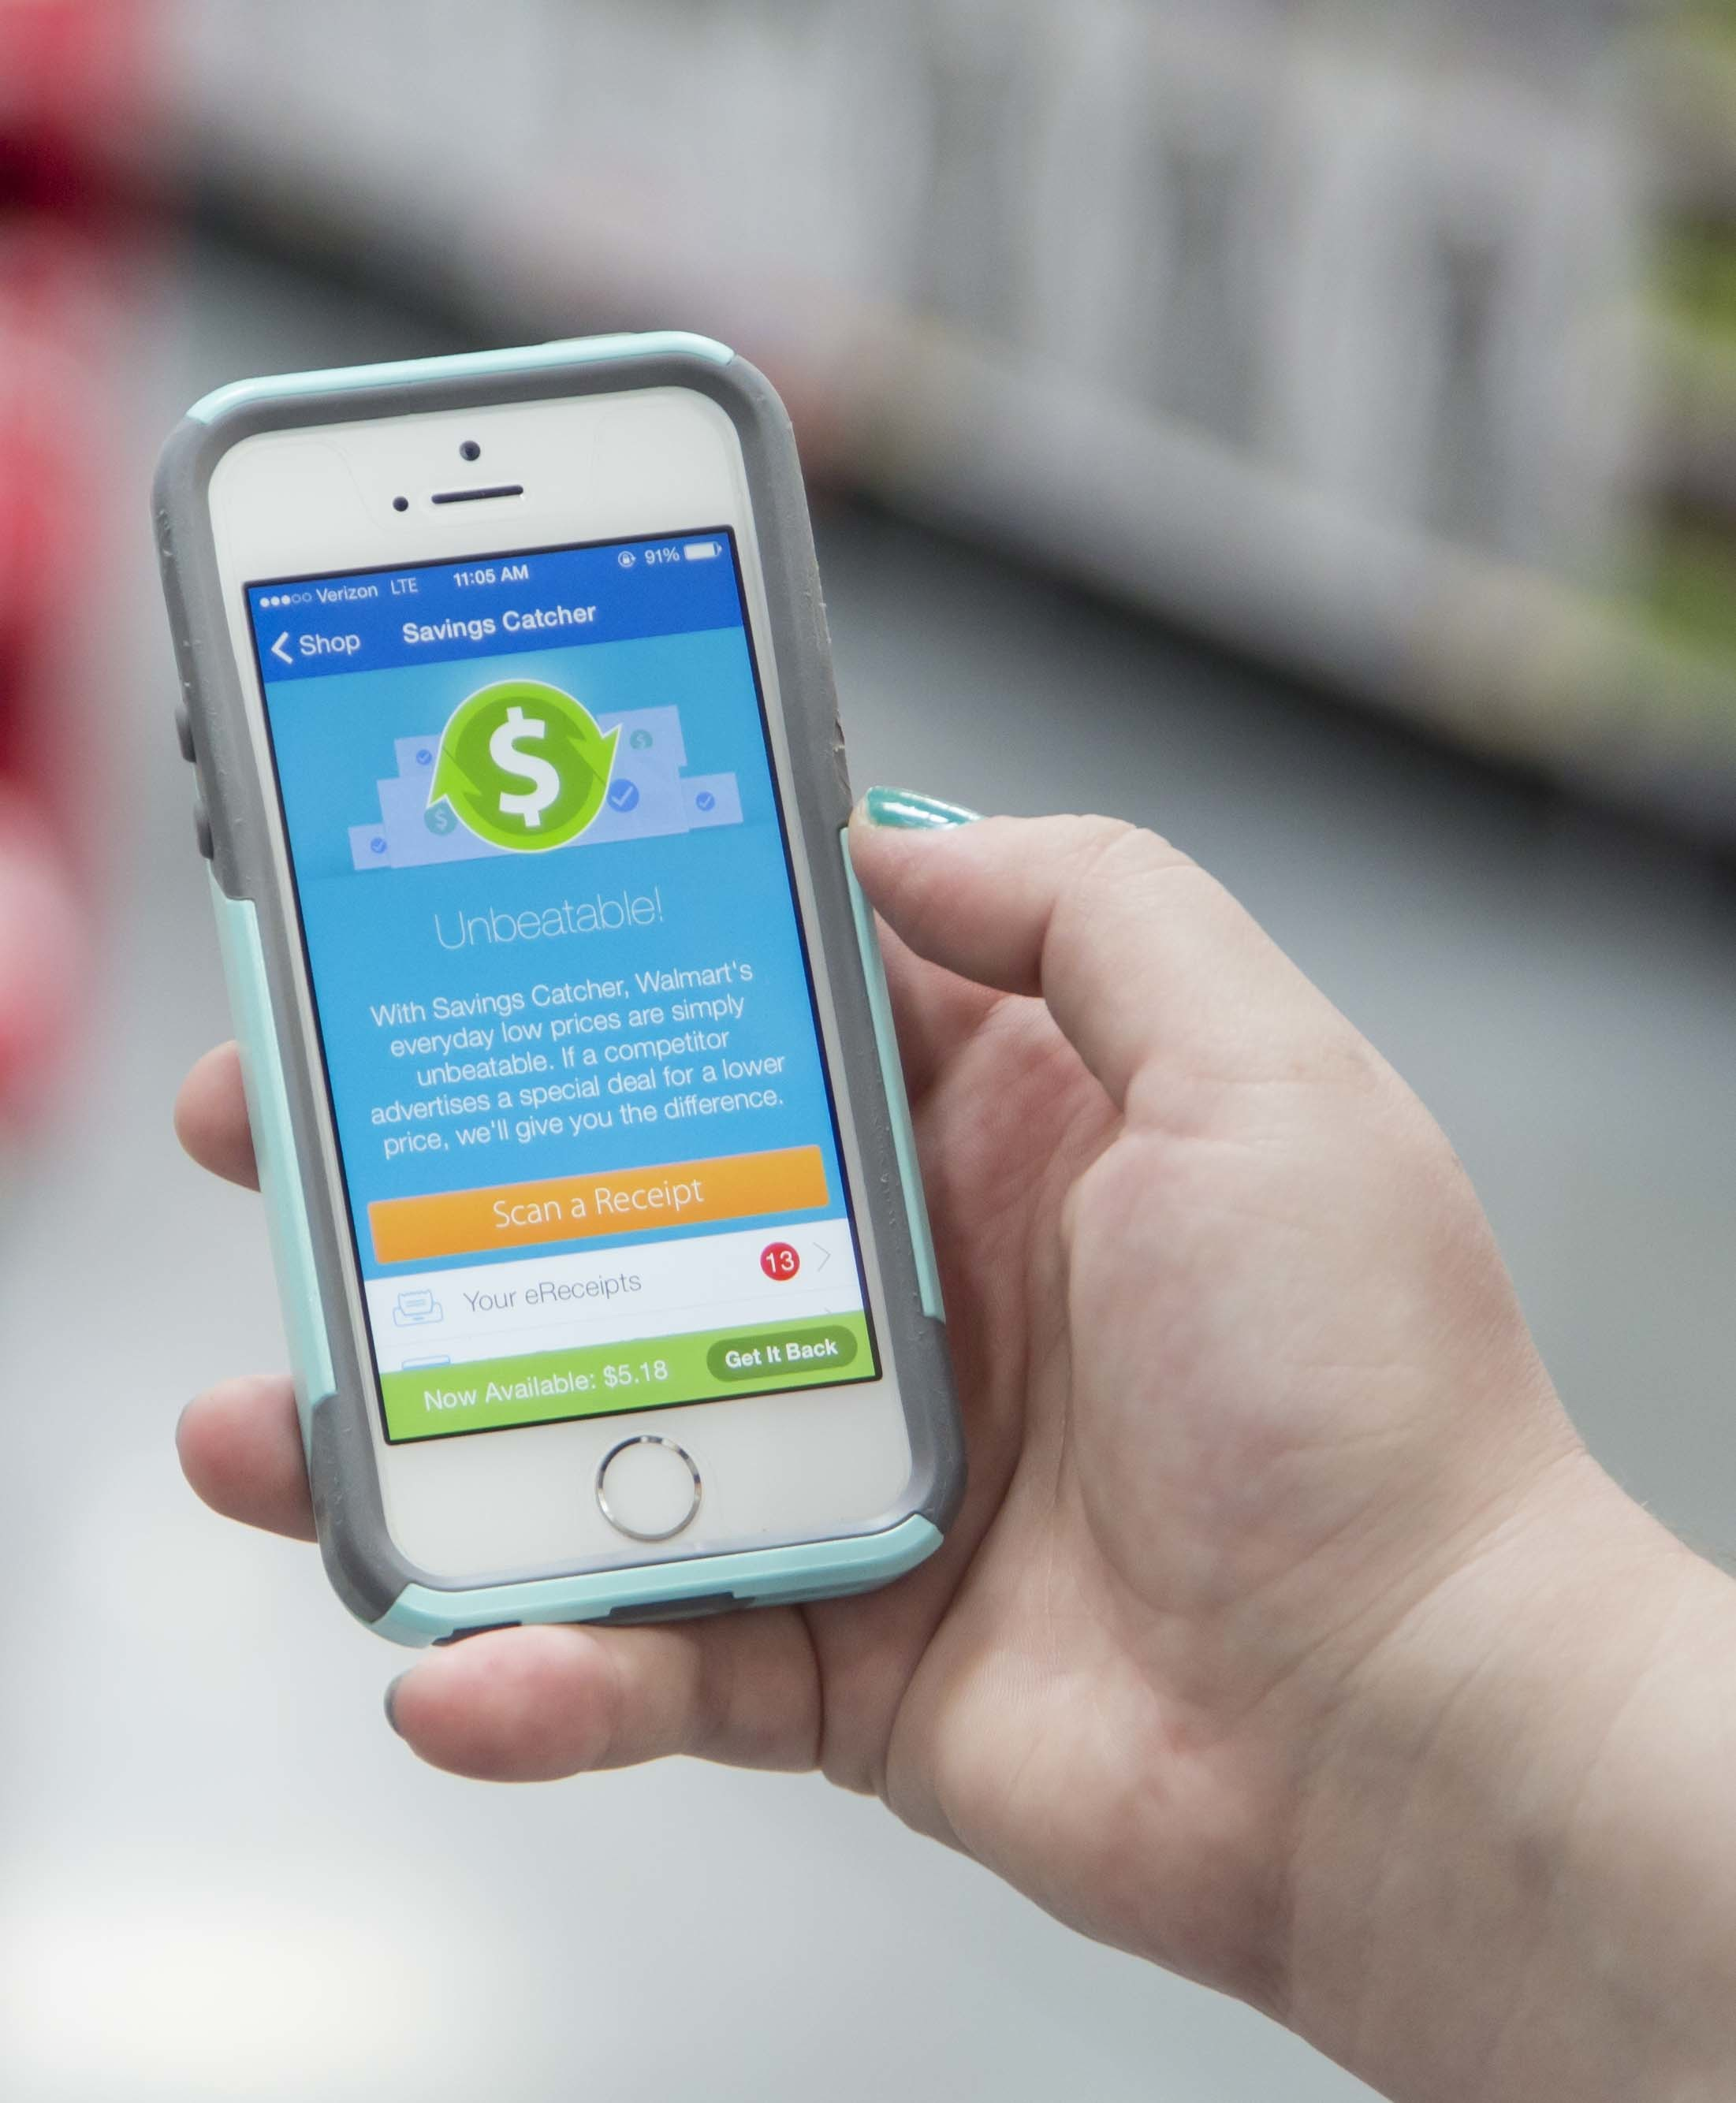 A customer uses Savings Catcher in Walmart's mobile app